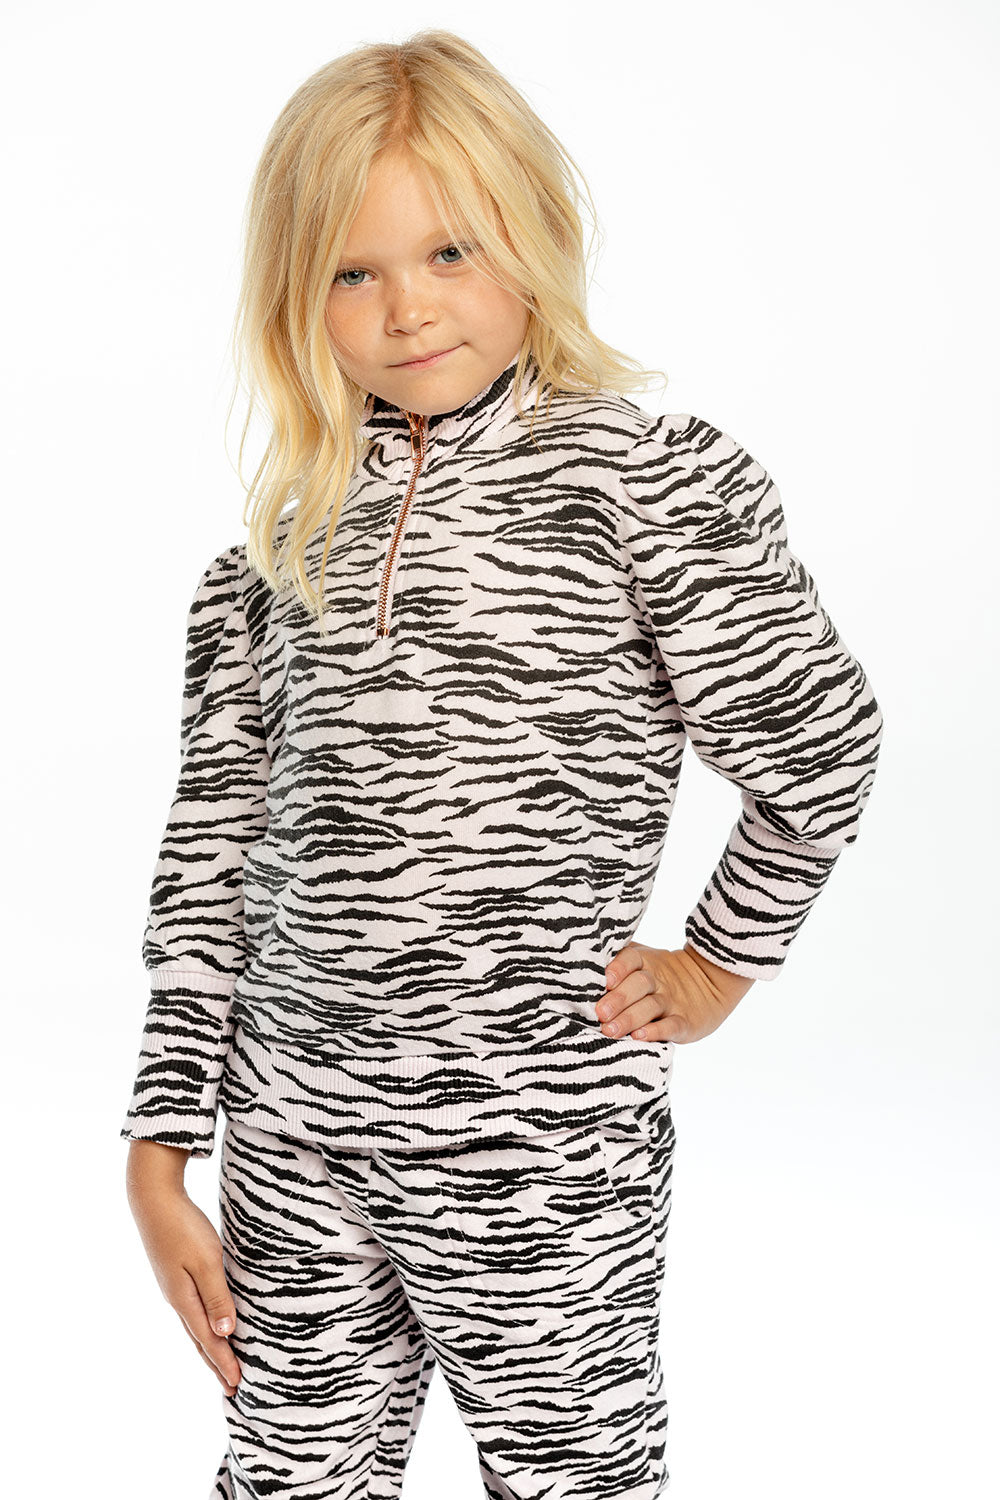 Girls Bliss Knit Puff Sleeve Mock Neck Half Zip Pullover GIRLS chaserbrand4.myshopify.com